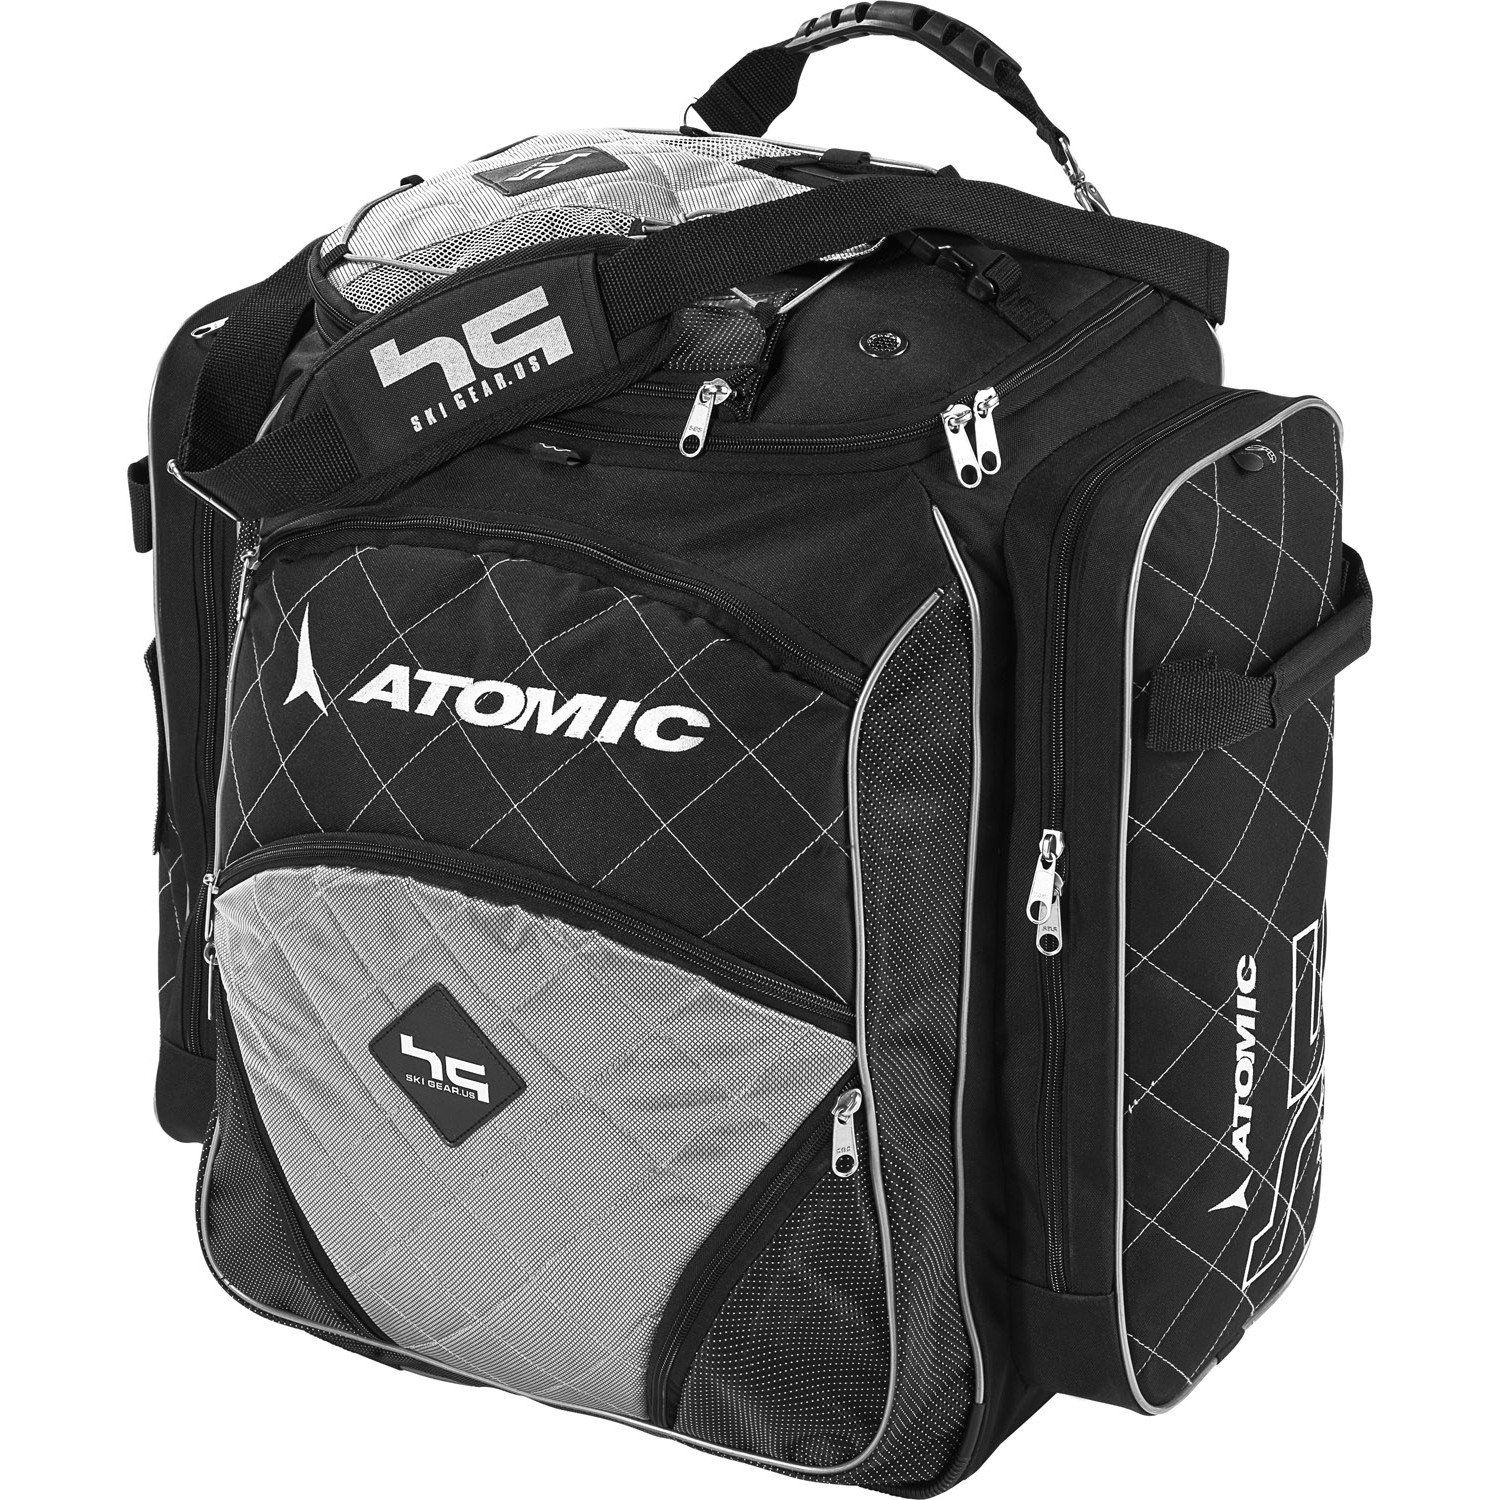 Atomic Redster Fis Heatable Bootpack Pro North Face Backpack Bags The North Face